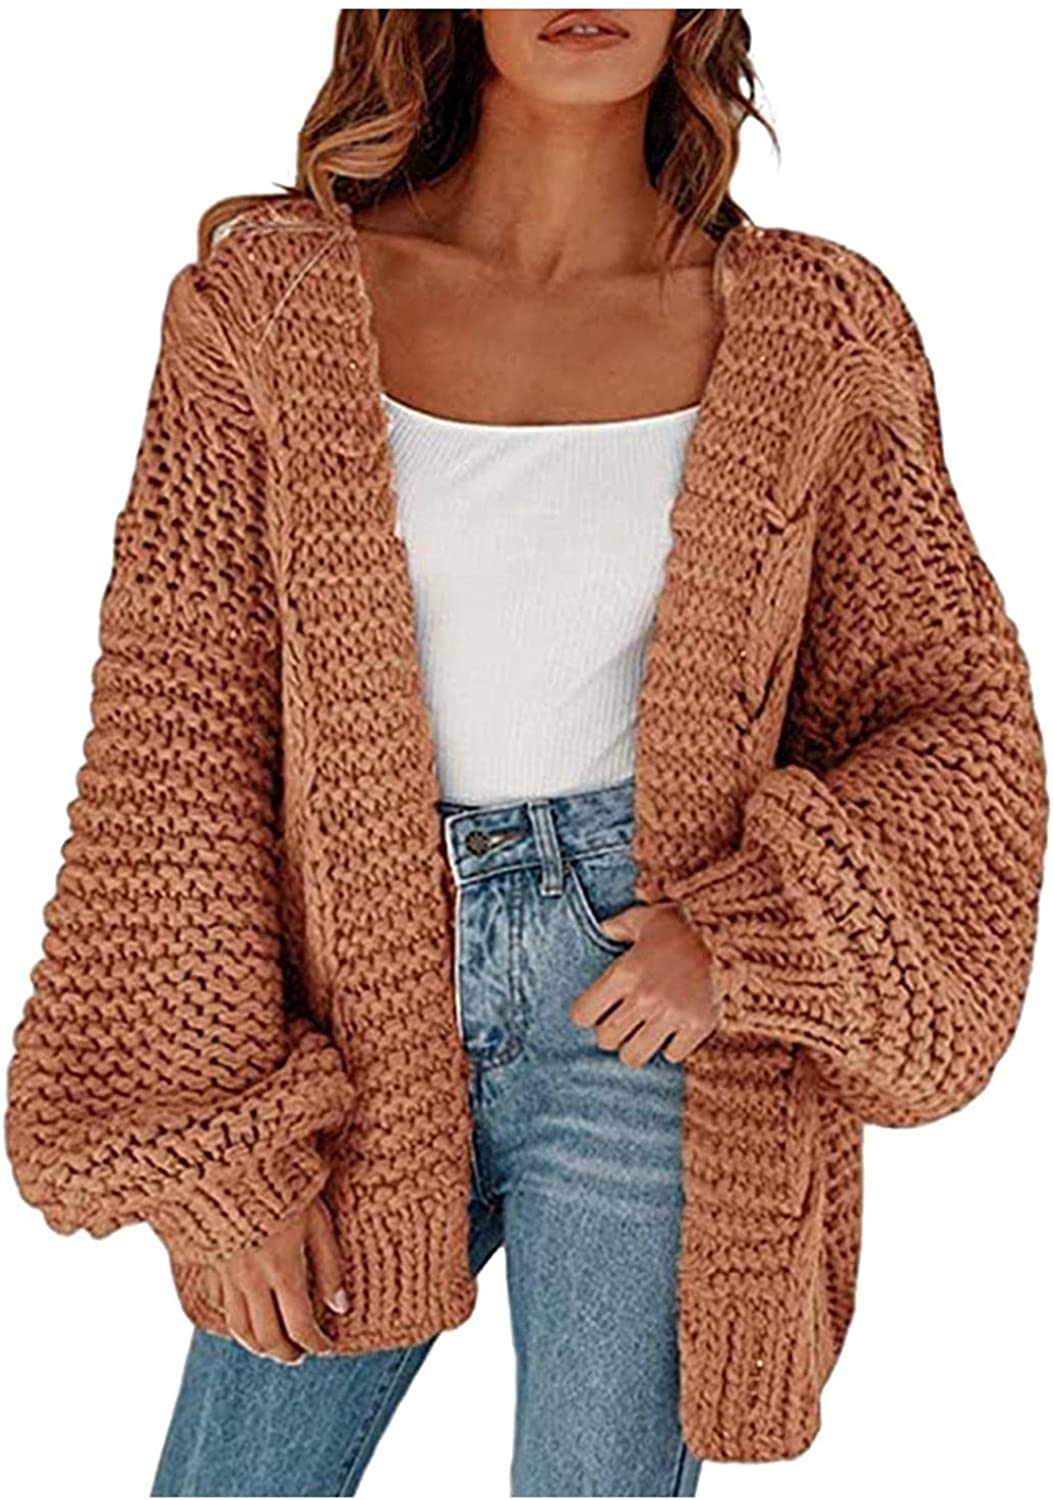 FGDJEE Sweaters Cardigan for Women Oversized Solid Color Thick Needle Winter Soft Warm Loose Sweater Coat